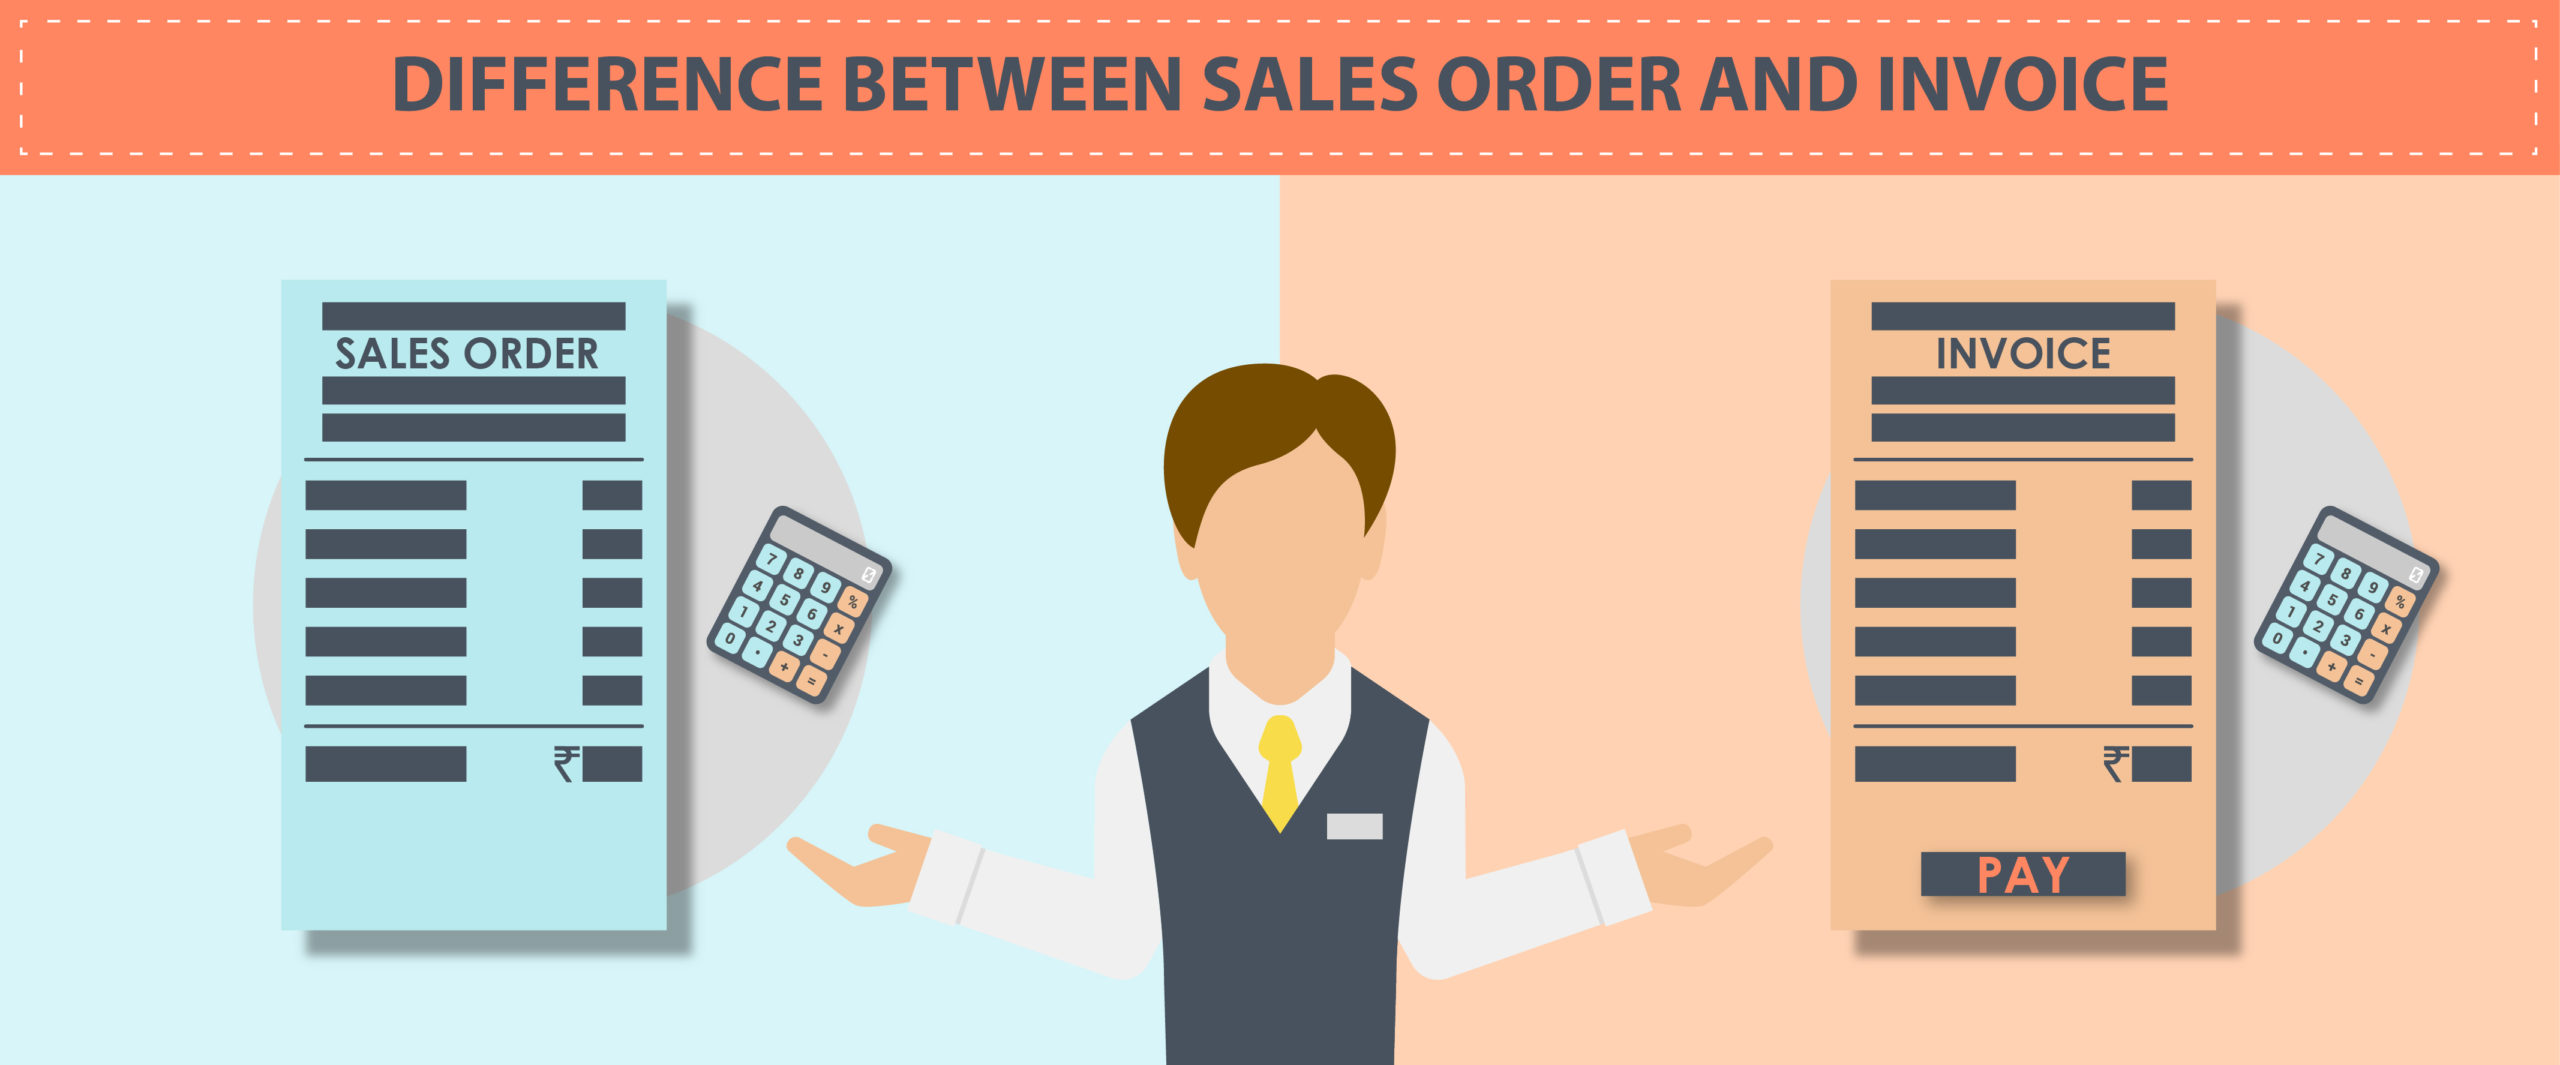 Difference Between Sales Order And Invoice - Var Sales